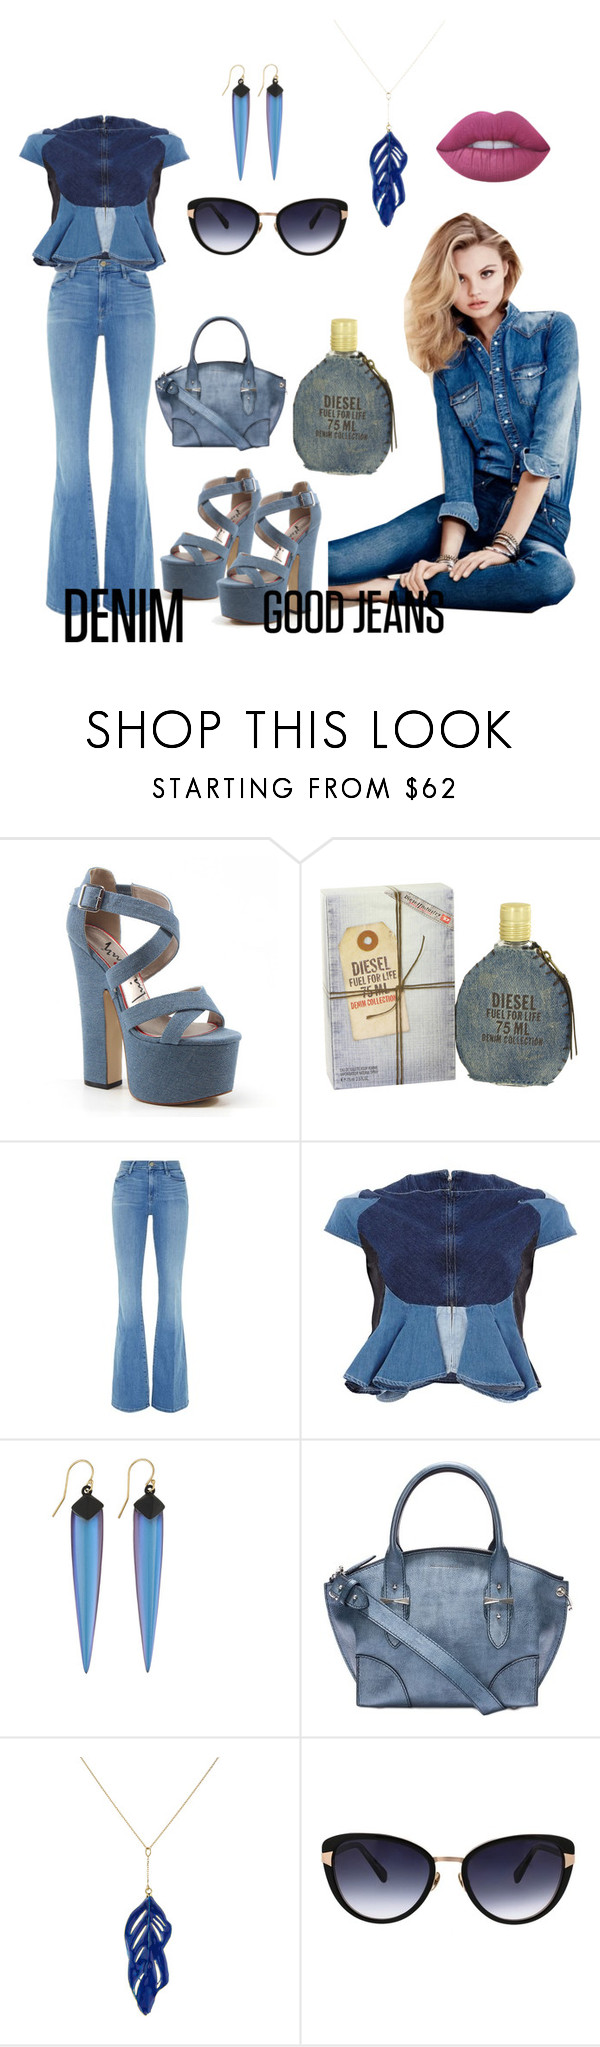 """denim"" by xiomara-ponce ❤ liked on Polyvore featuring Luichiny, Diesel, Frame Denim, Anrealage, Alexis Bittar, Alexander McQueen, Aurélie Bidermann, Oscar de la Renta, H&M and Lime Crime"